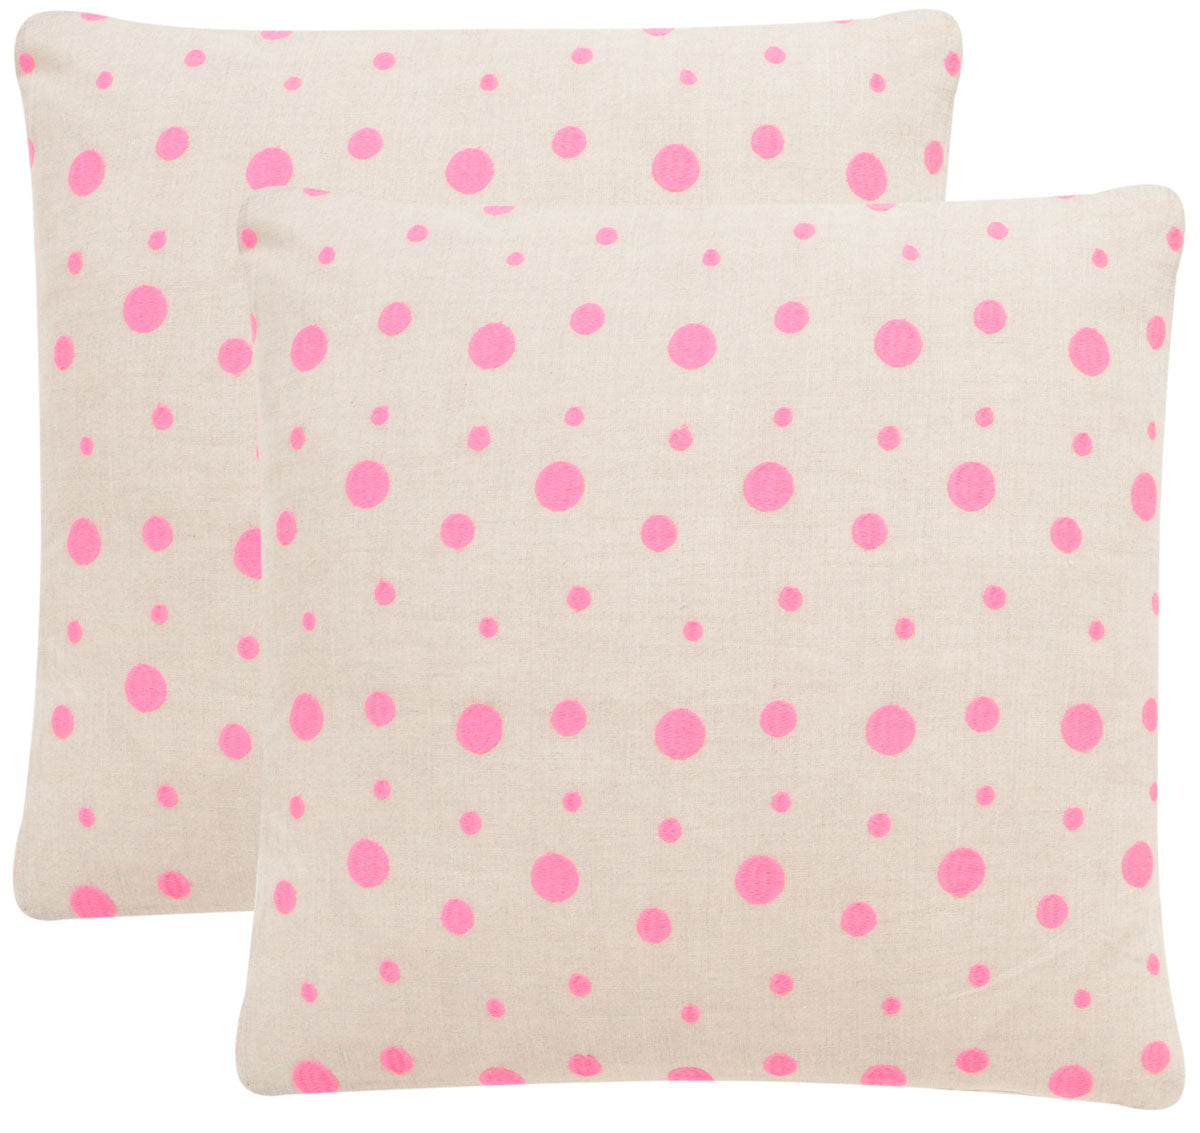 Candy Buttons Pillow.